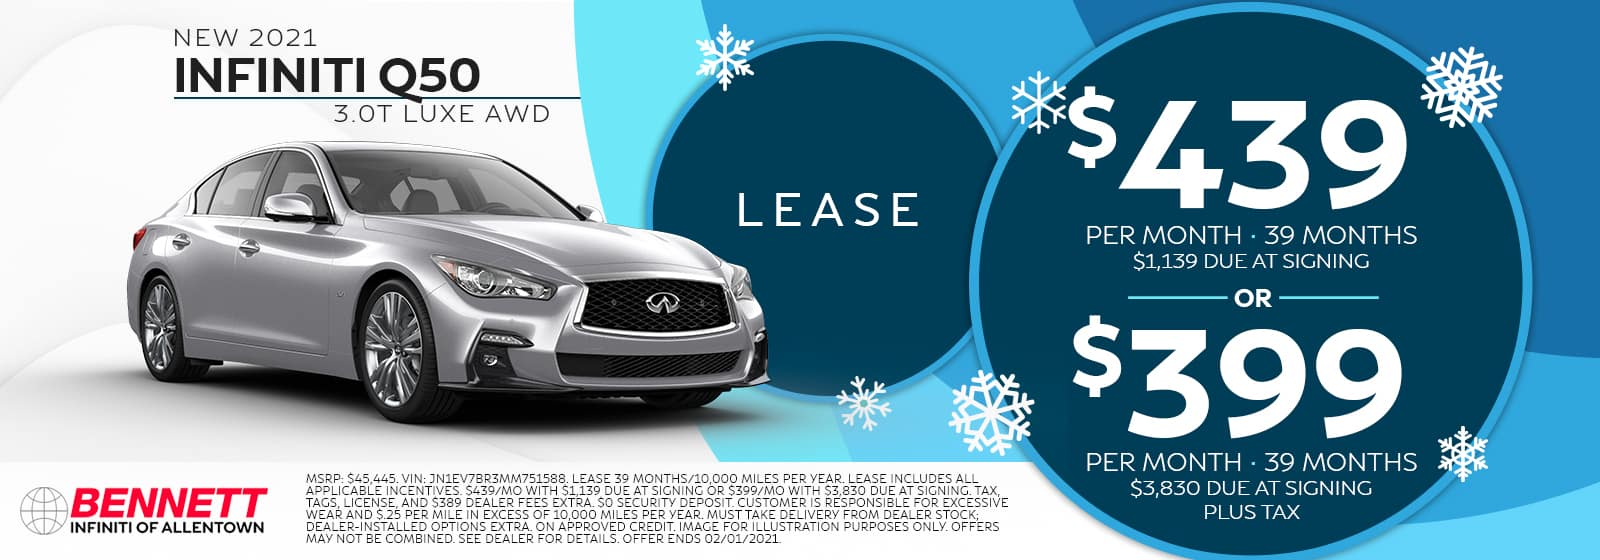 New 2021 INFINITI Q50 3.0T LUXE AWD - Lease for $439 per month for 39 months with $1,139 due at signing OR finance for $399 per month for 39 months with $3,830 due at signing (plus tax).